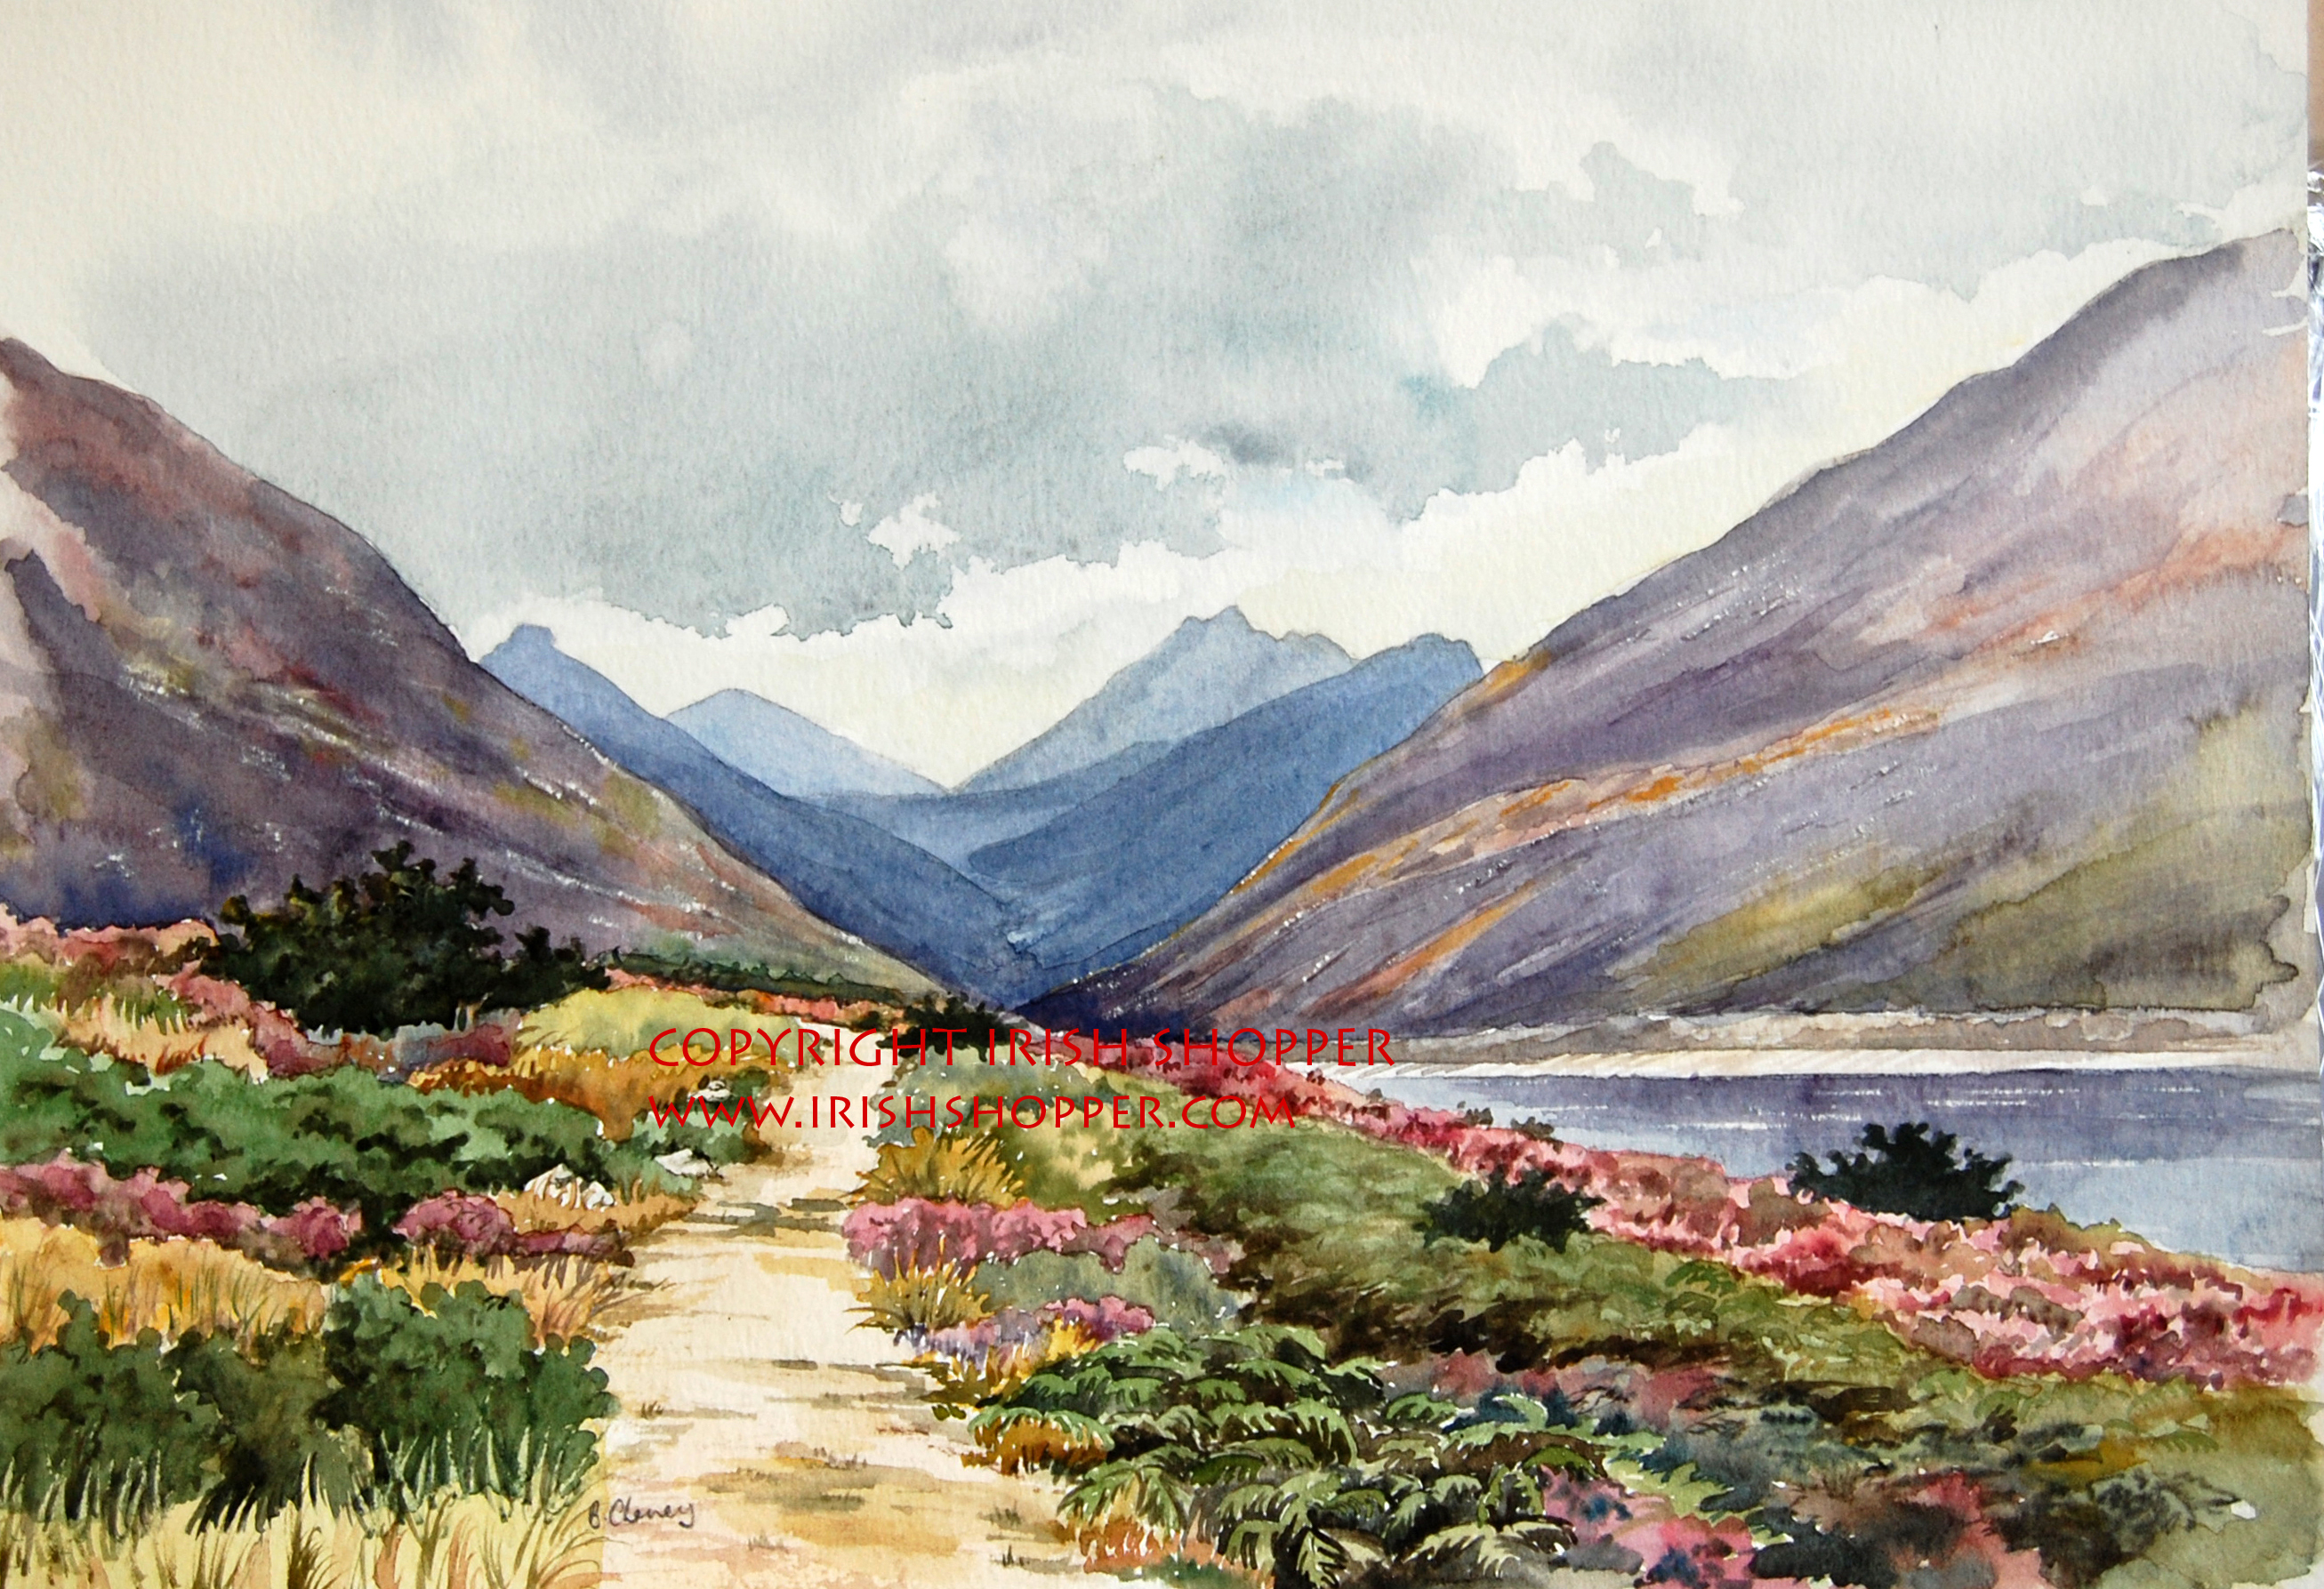 The Silent Valley - A4 Print